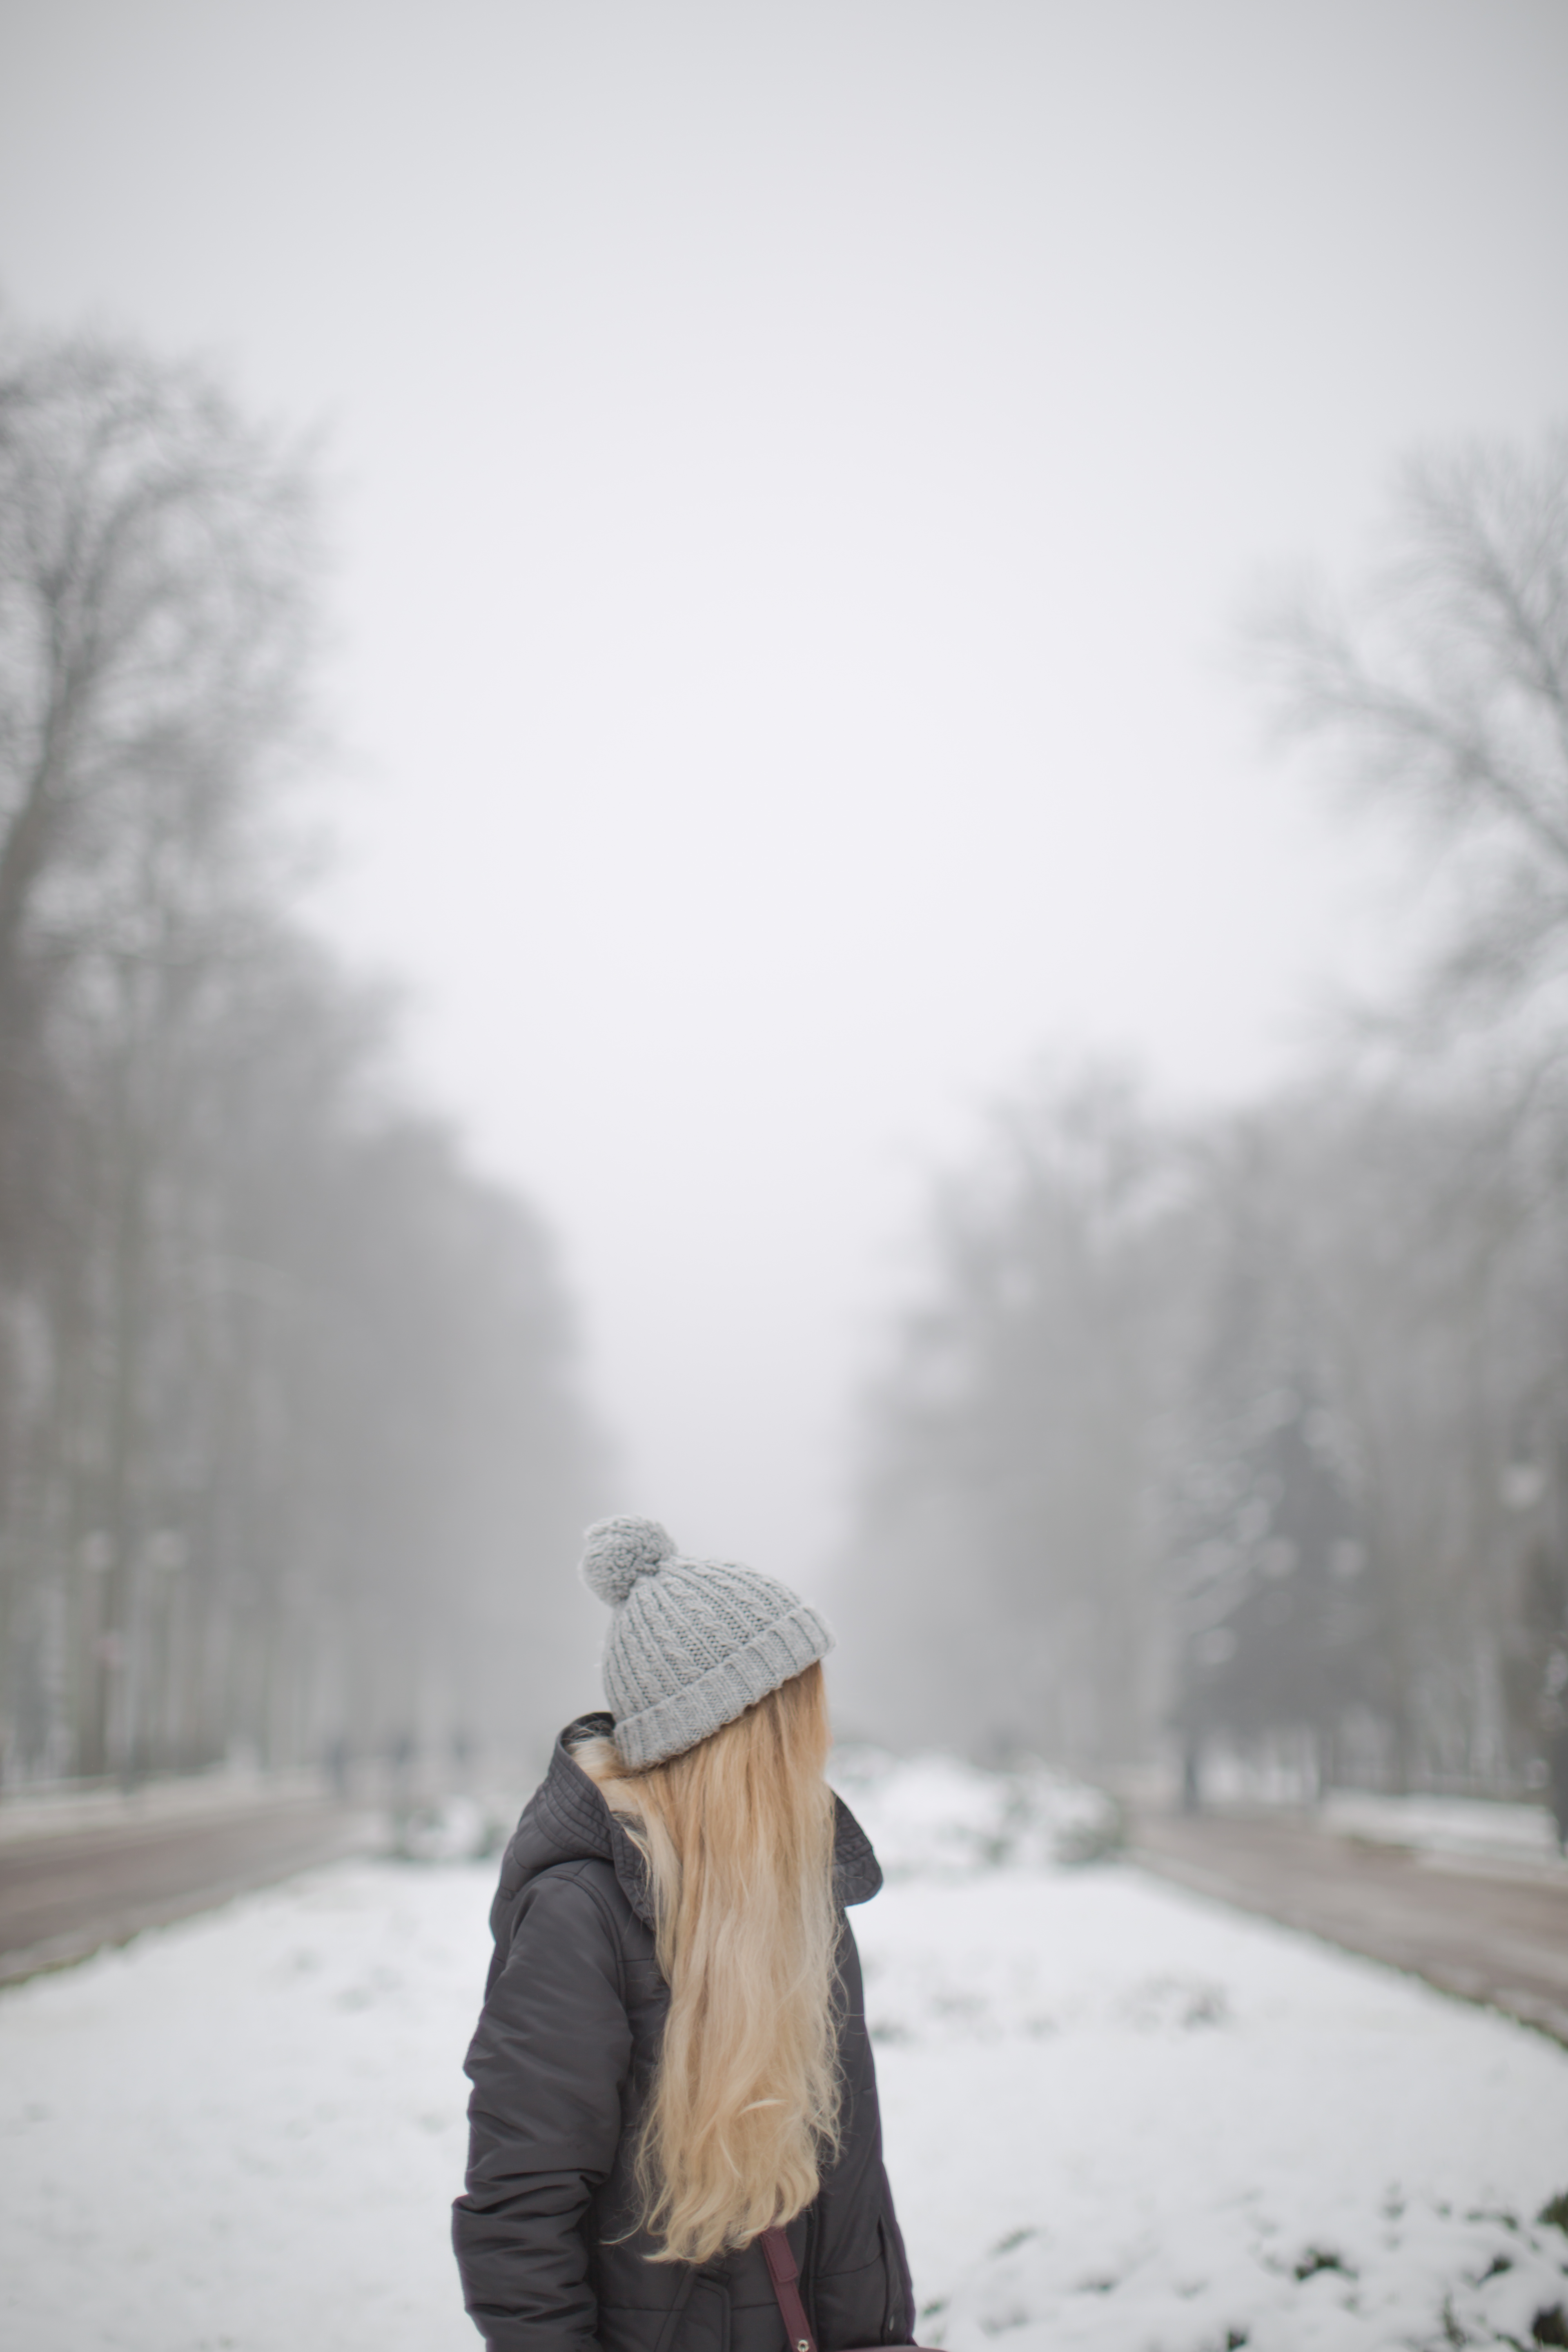 Women walking on the street ,foggy winter day example image 1